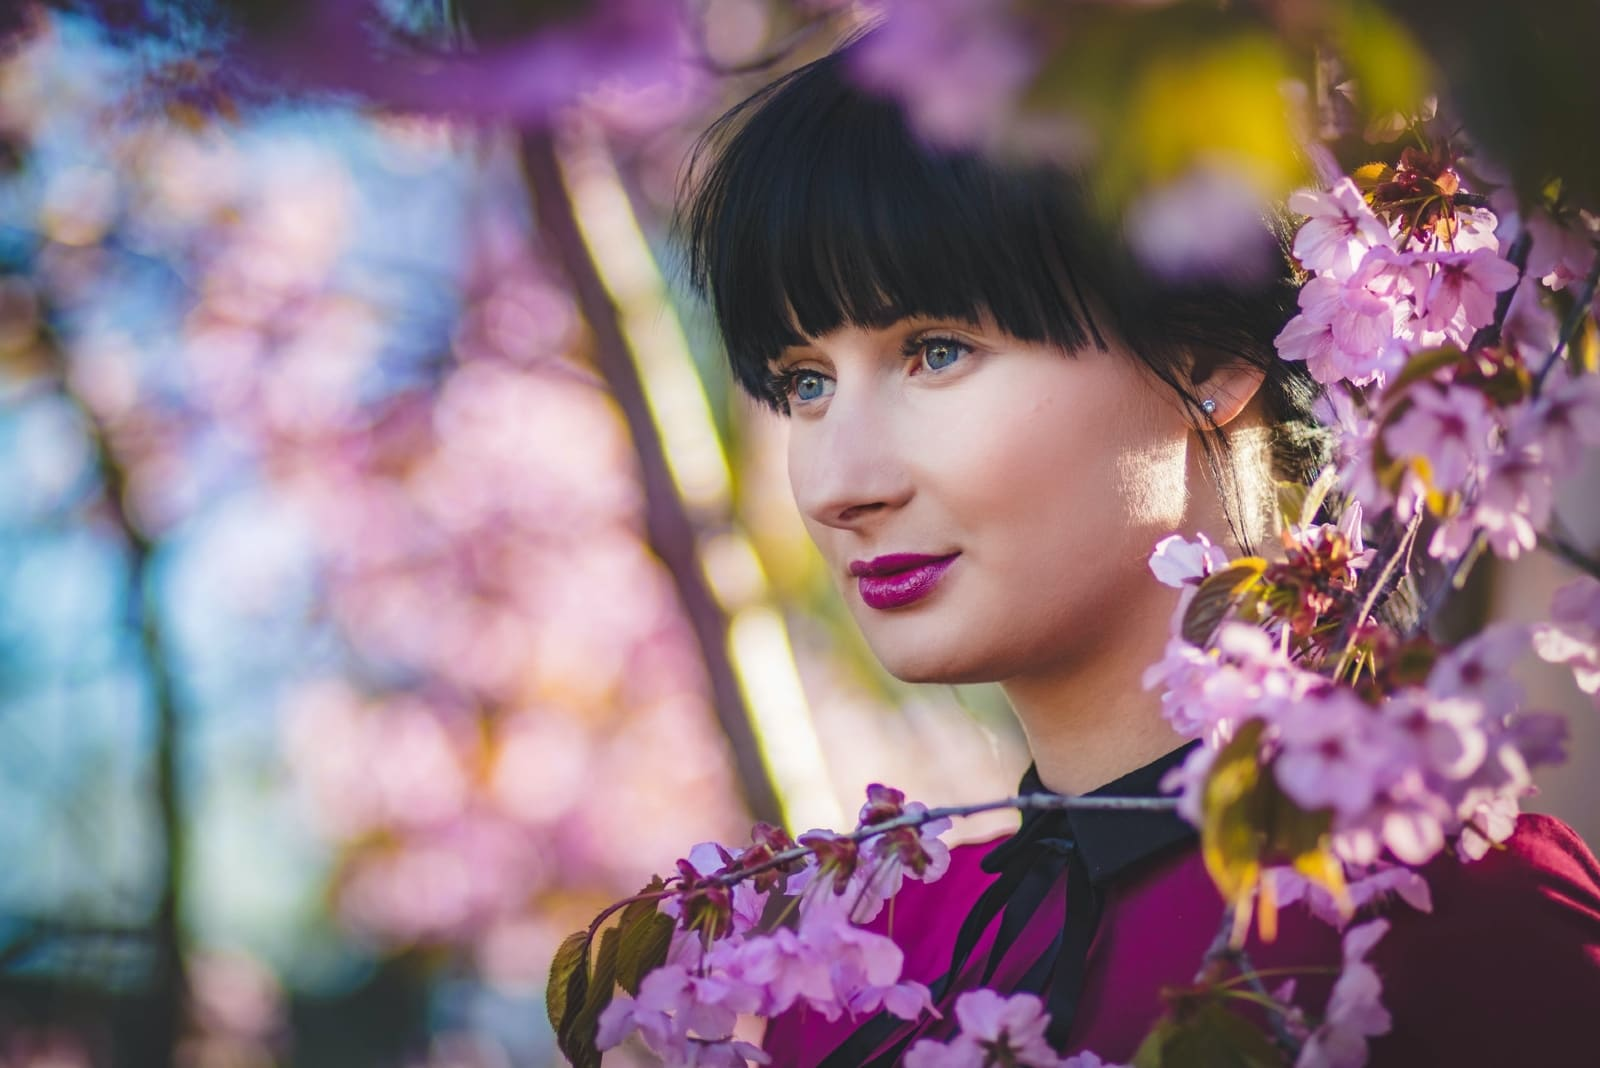 woman with purple lipstick standing near pink flowers